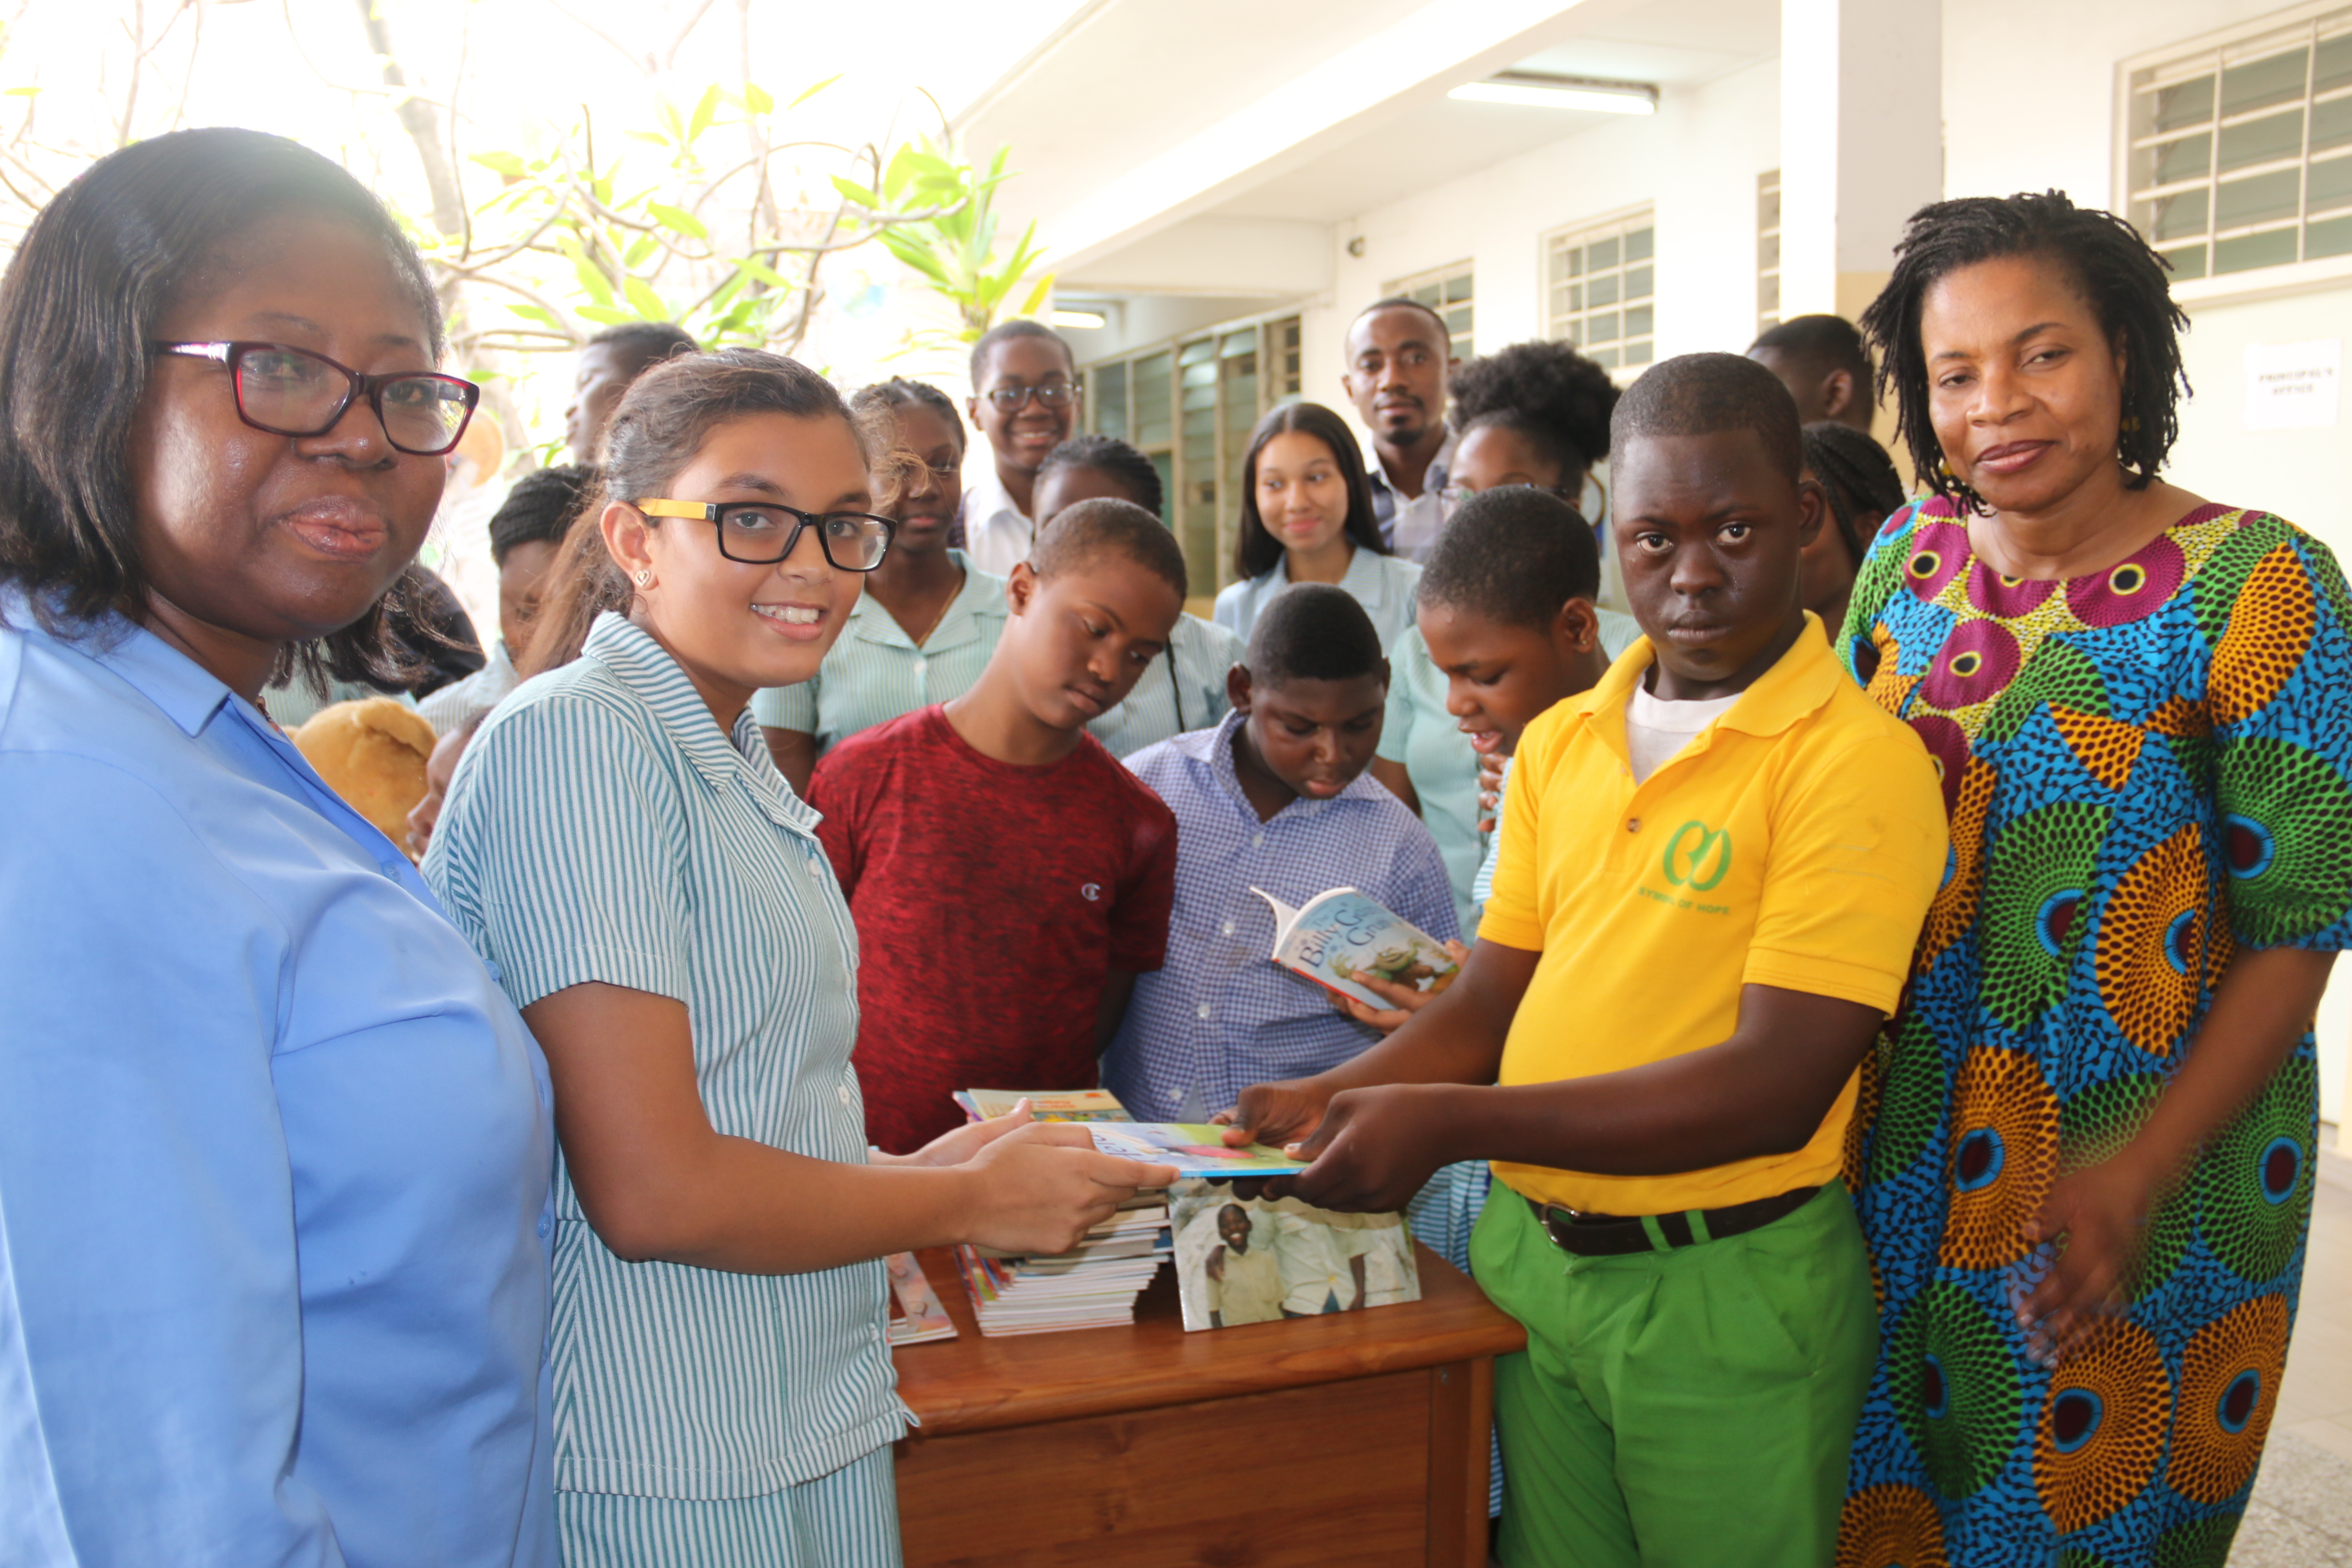 GIS Community Service Club Donates Books to New Horizon Special School